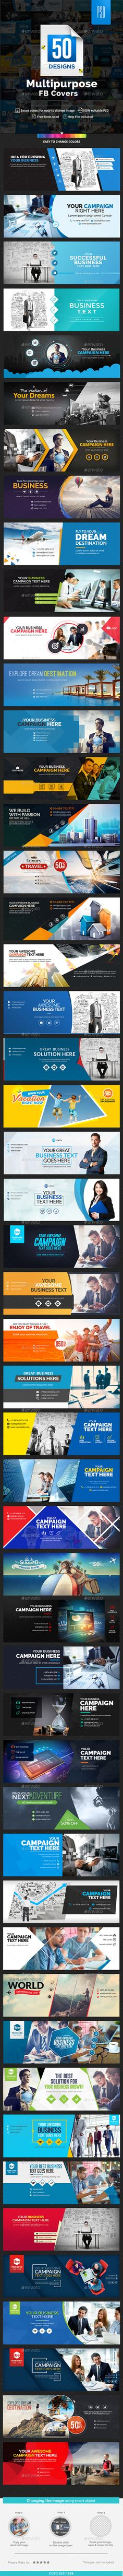 Multipurpose Facebook Covers Design - 50 Designs - Facebook Timeline Covers Template PSD. Download here: https://graphicriver.net/item/multipurpose-facebook-covers-50-designs/16957831?s_rank=11&ref=yinkira